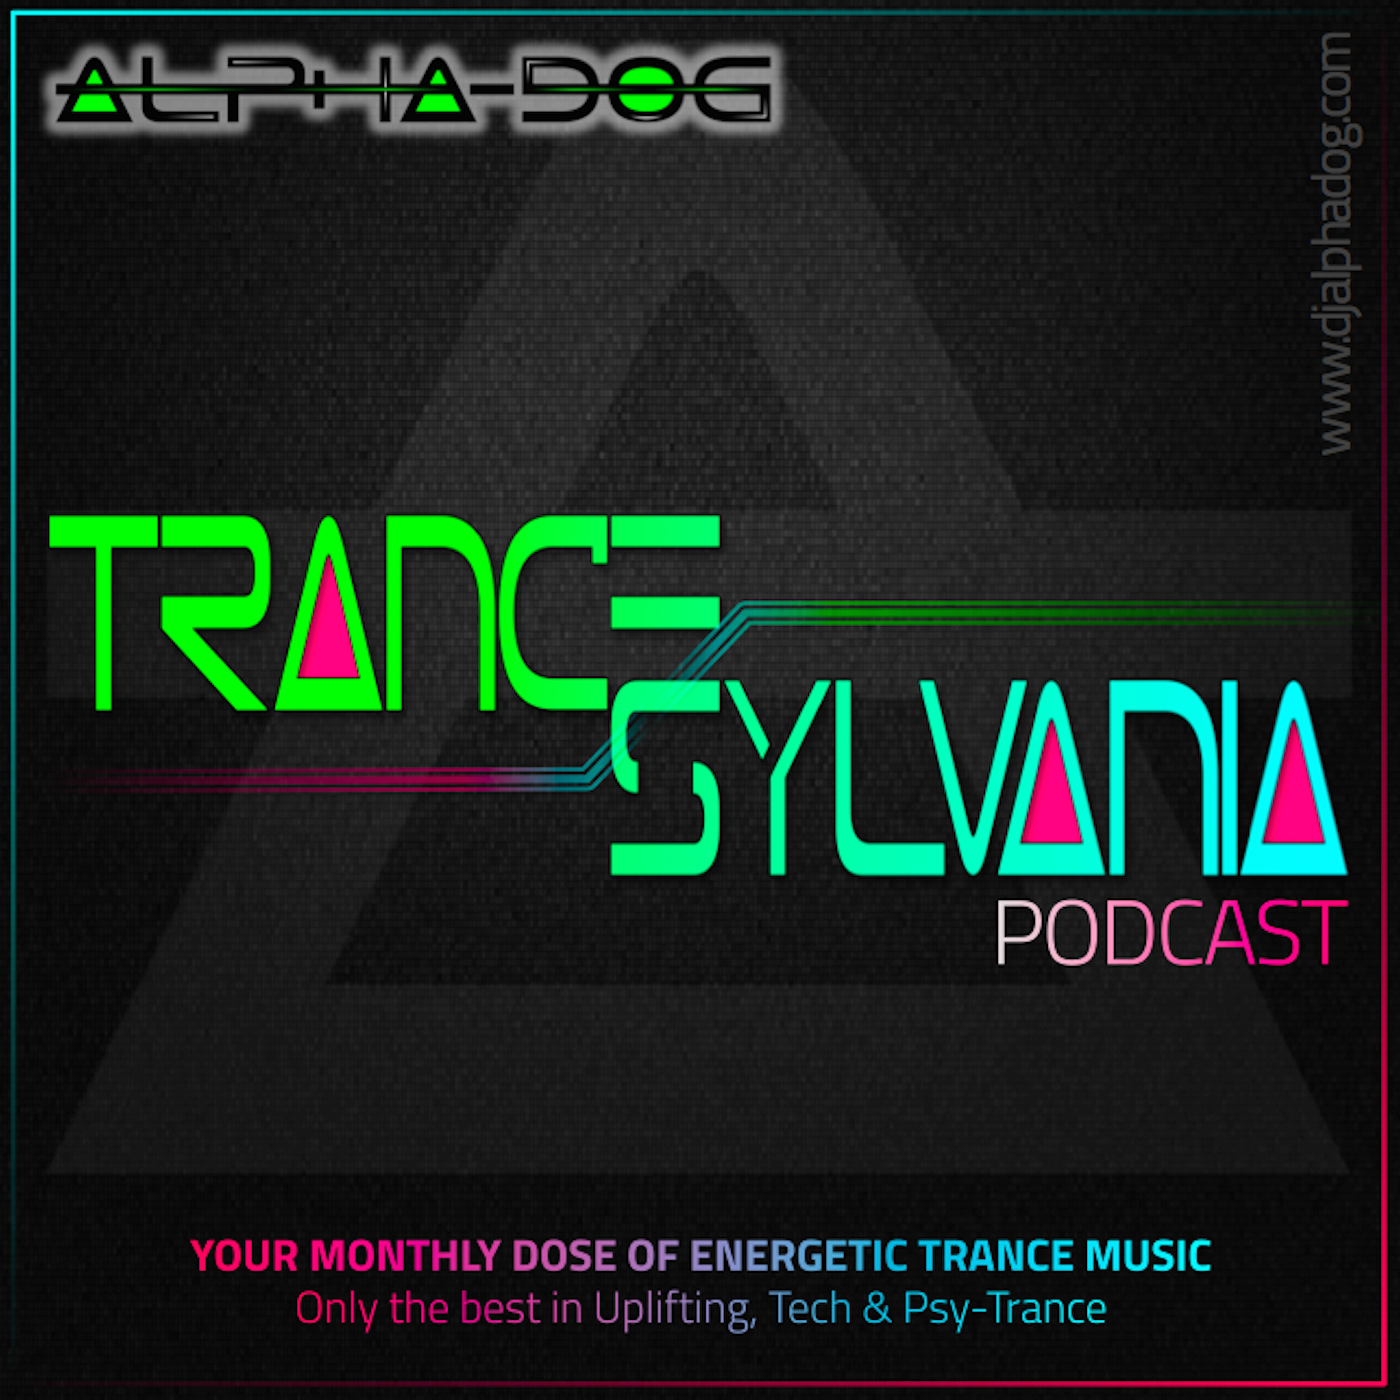 TranceSylvania - Trance Podcast by Alpha-Dog